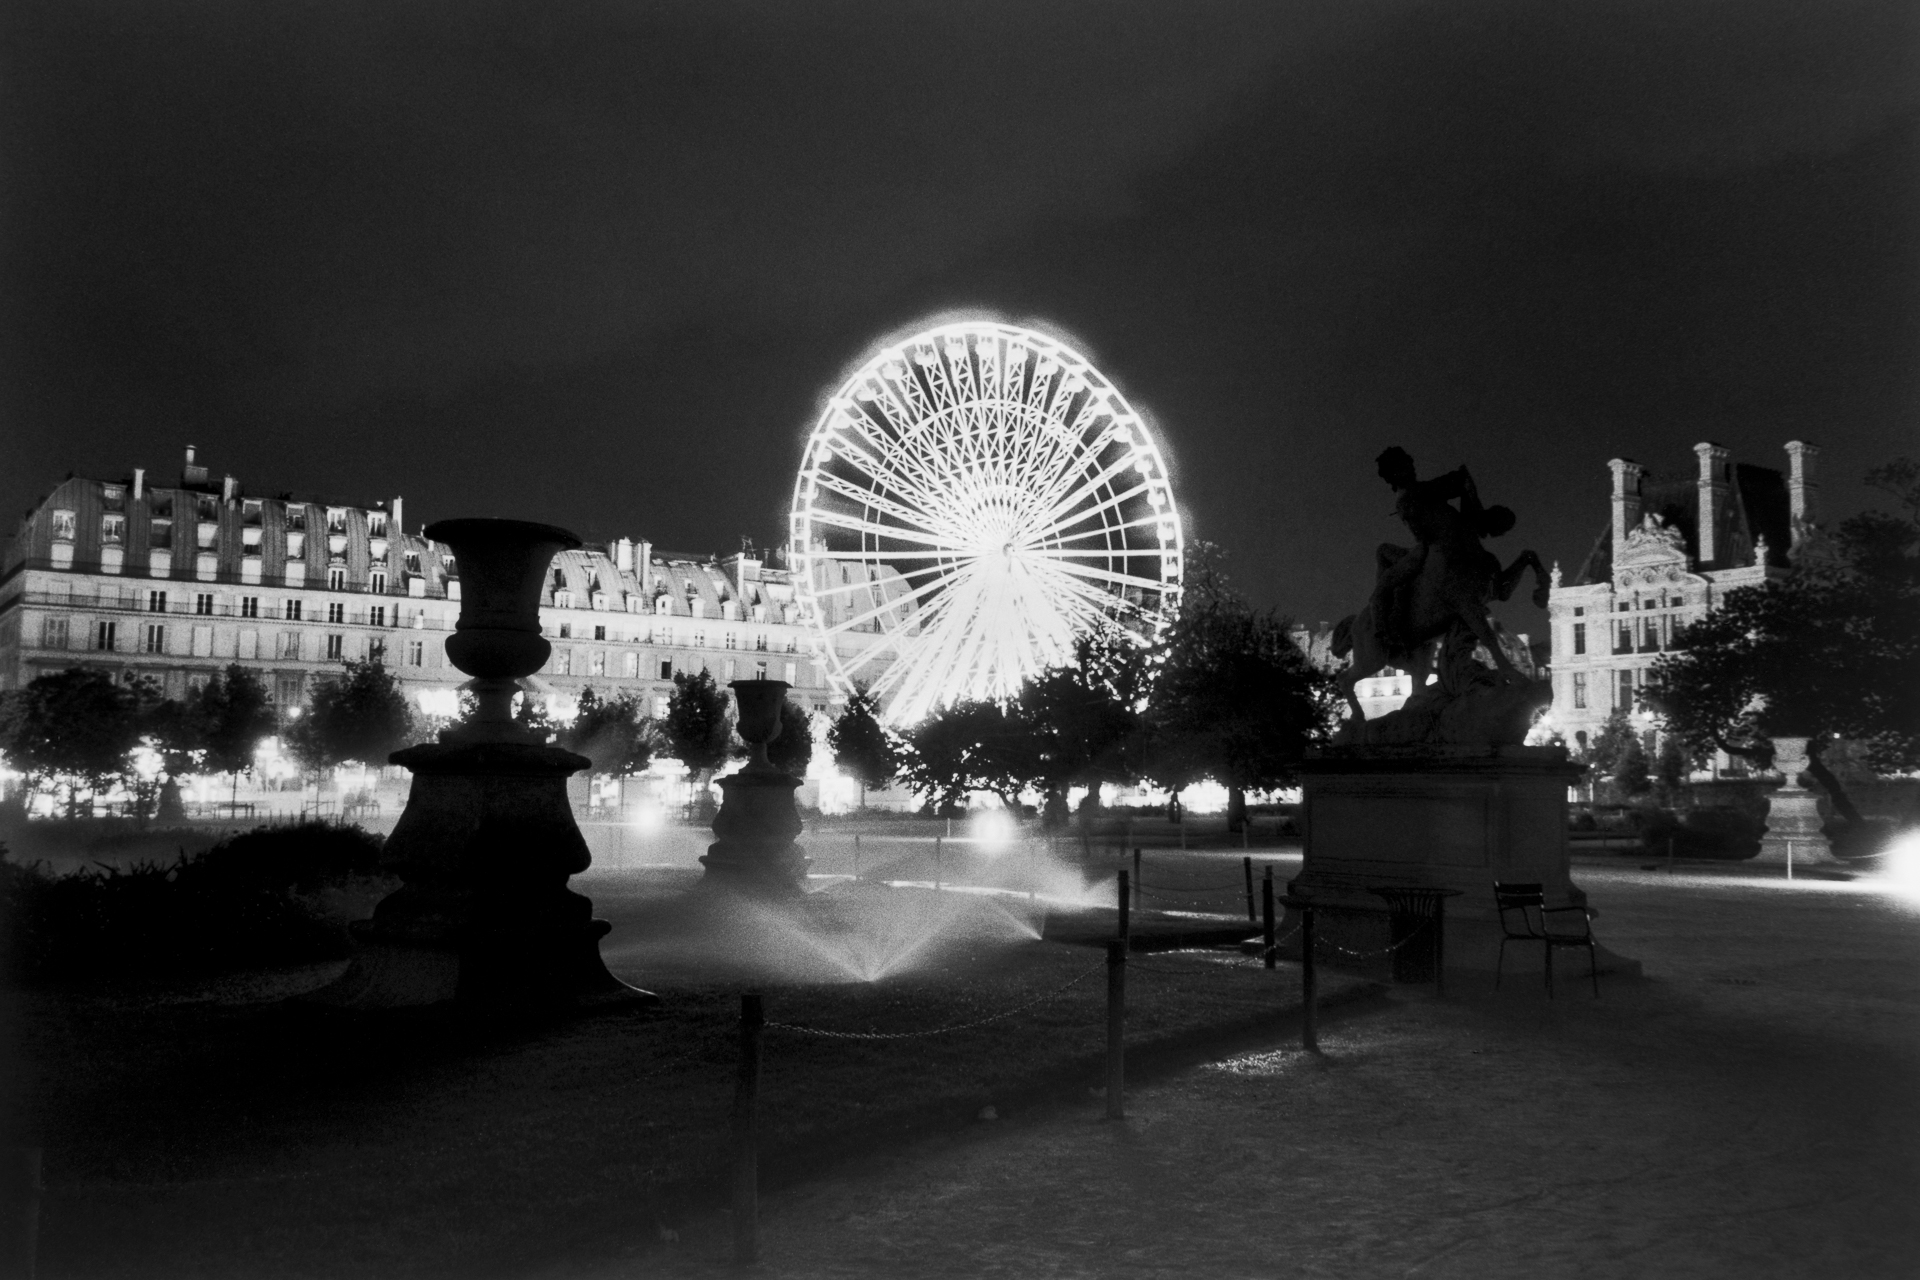 Ferris Wheel from the Tuileries - Paris, France